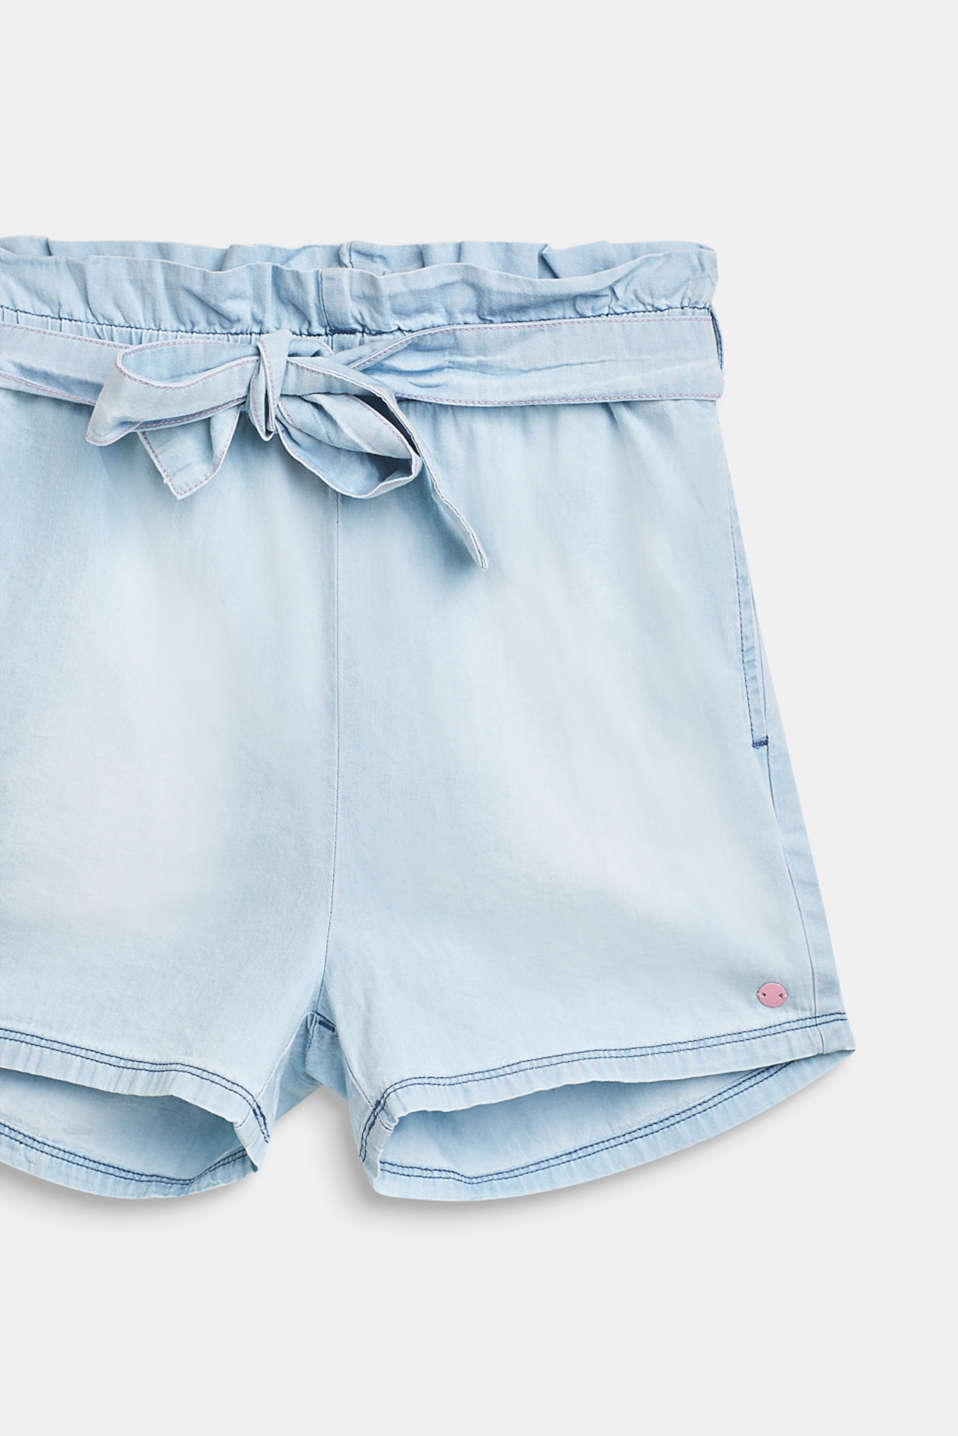 Paper bag shorts with a tie-around belt, 100% cotton, LCBLEACHED DENIM, detail image number 2